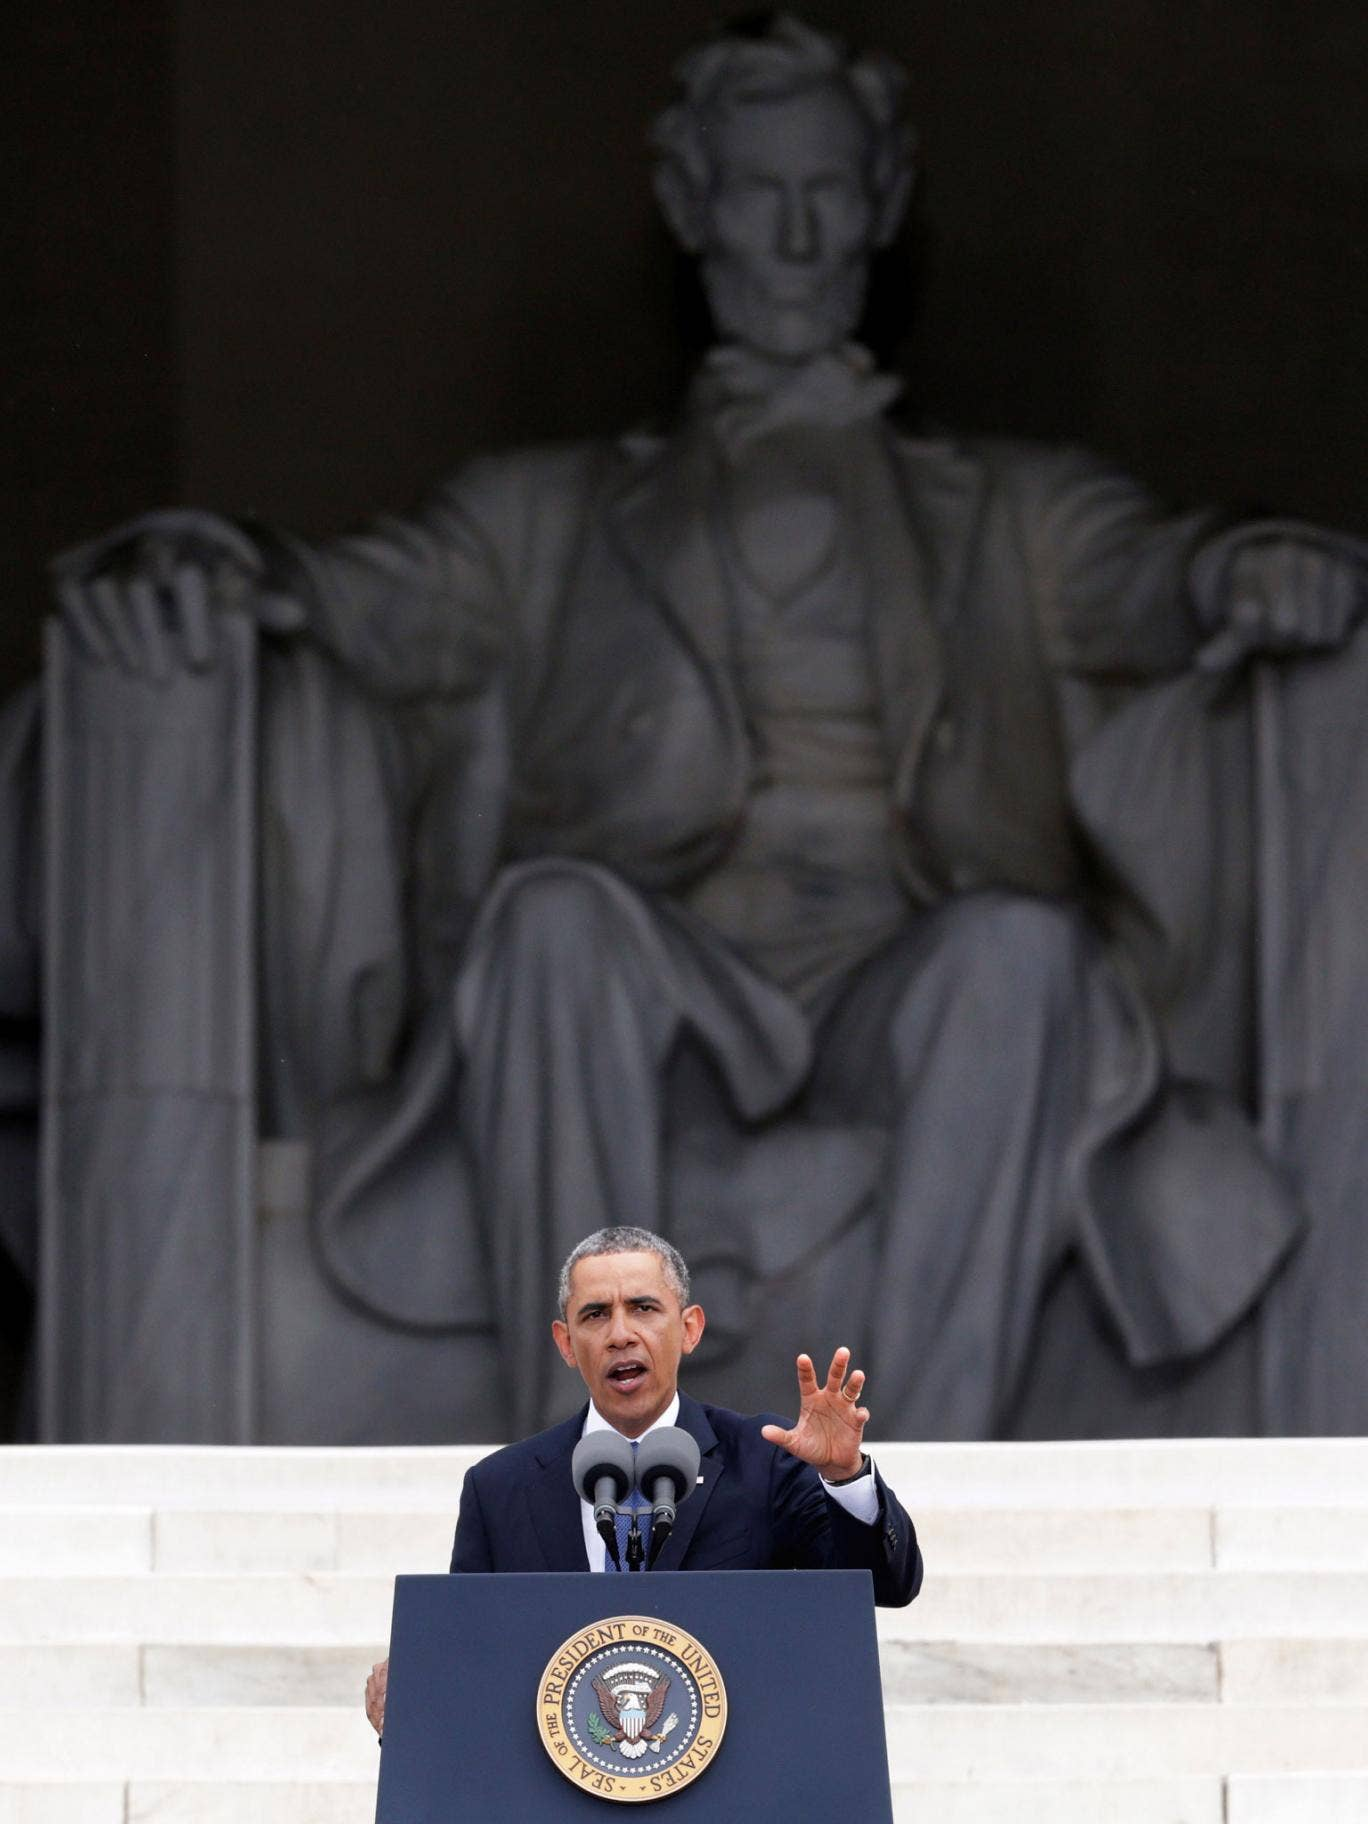 Barack Obama speaks during the Let Freedom Ring ceremony on the steps of the Lincoln Memorial